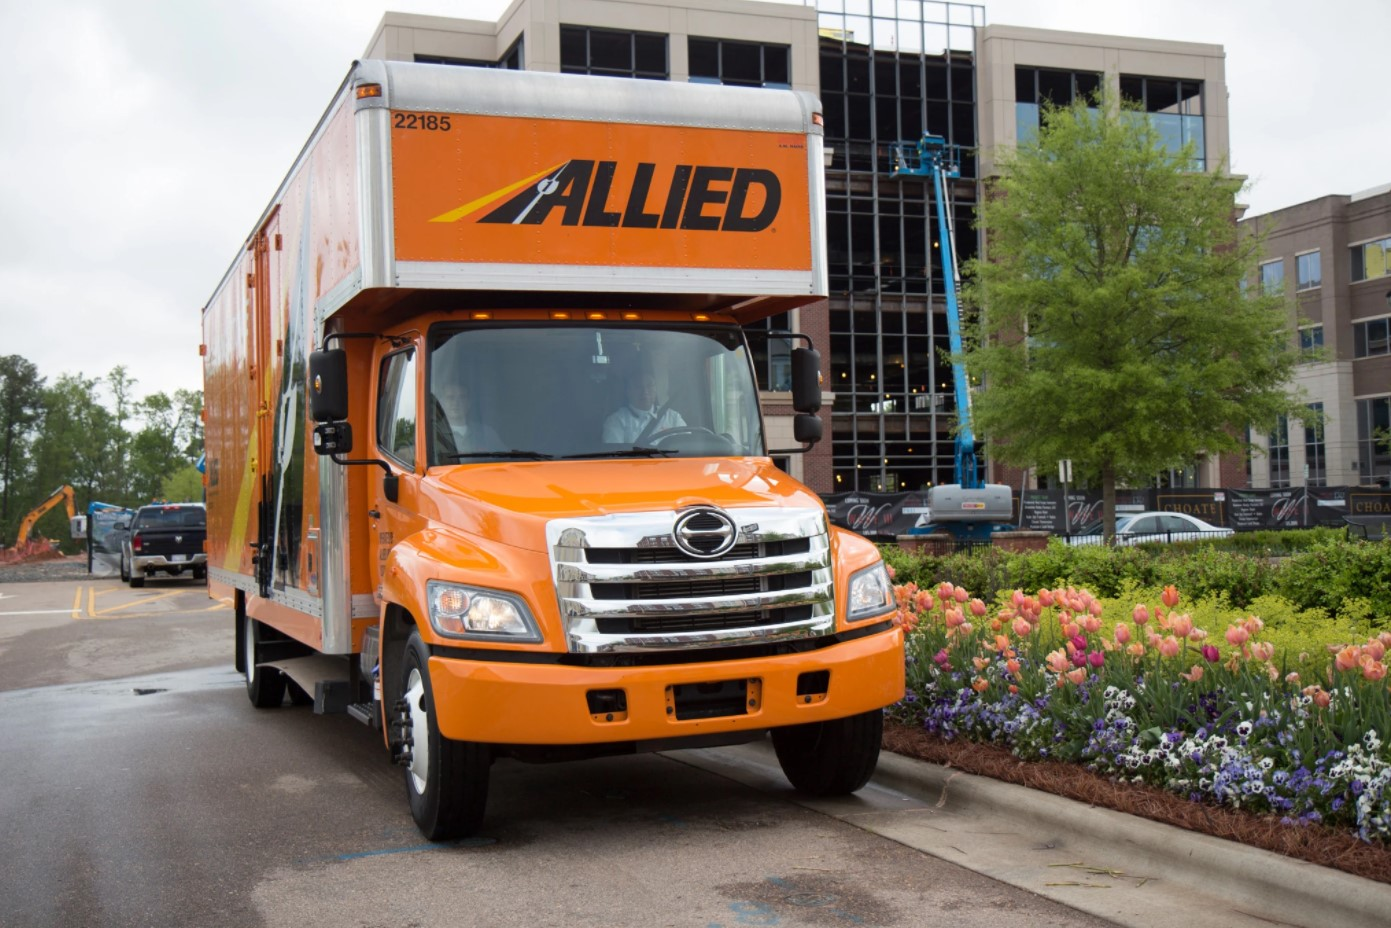 Allied Van Lines Truck Ready for a Corporate Move